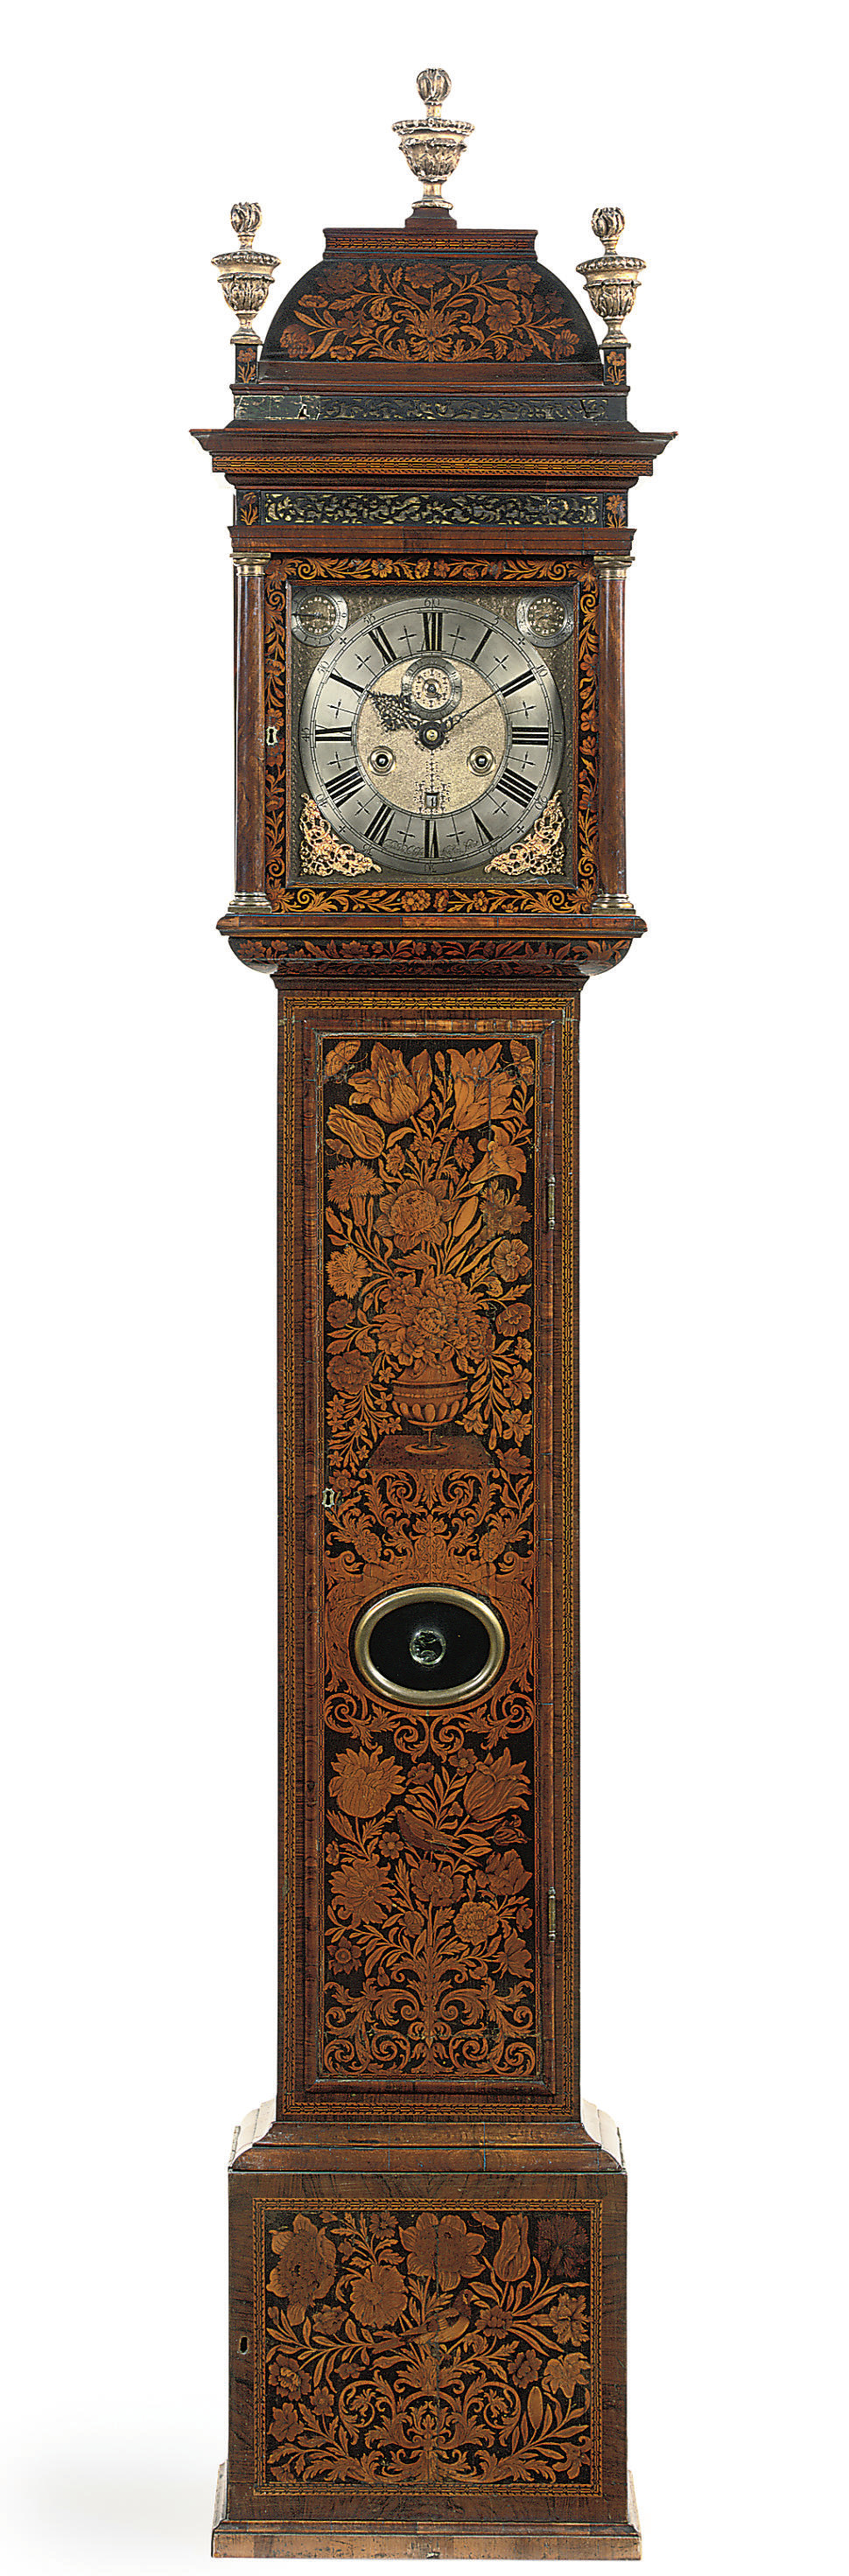 A WILLIAM III WALNUT, FIGURED-WALNUT AND FRUITWOOD MARQUETRY MONTH-GOING LONGCASE CLOCK WITH PULL QUARTER REPEAT AND 1¼ SECONDS PENDULUM